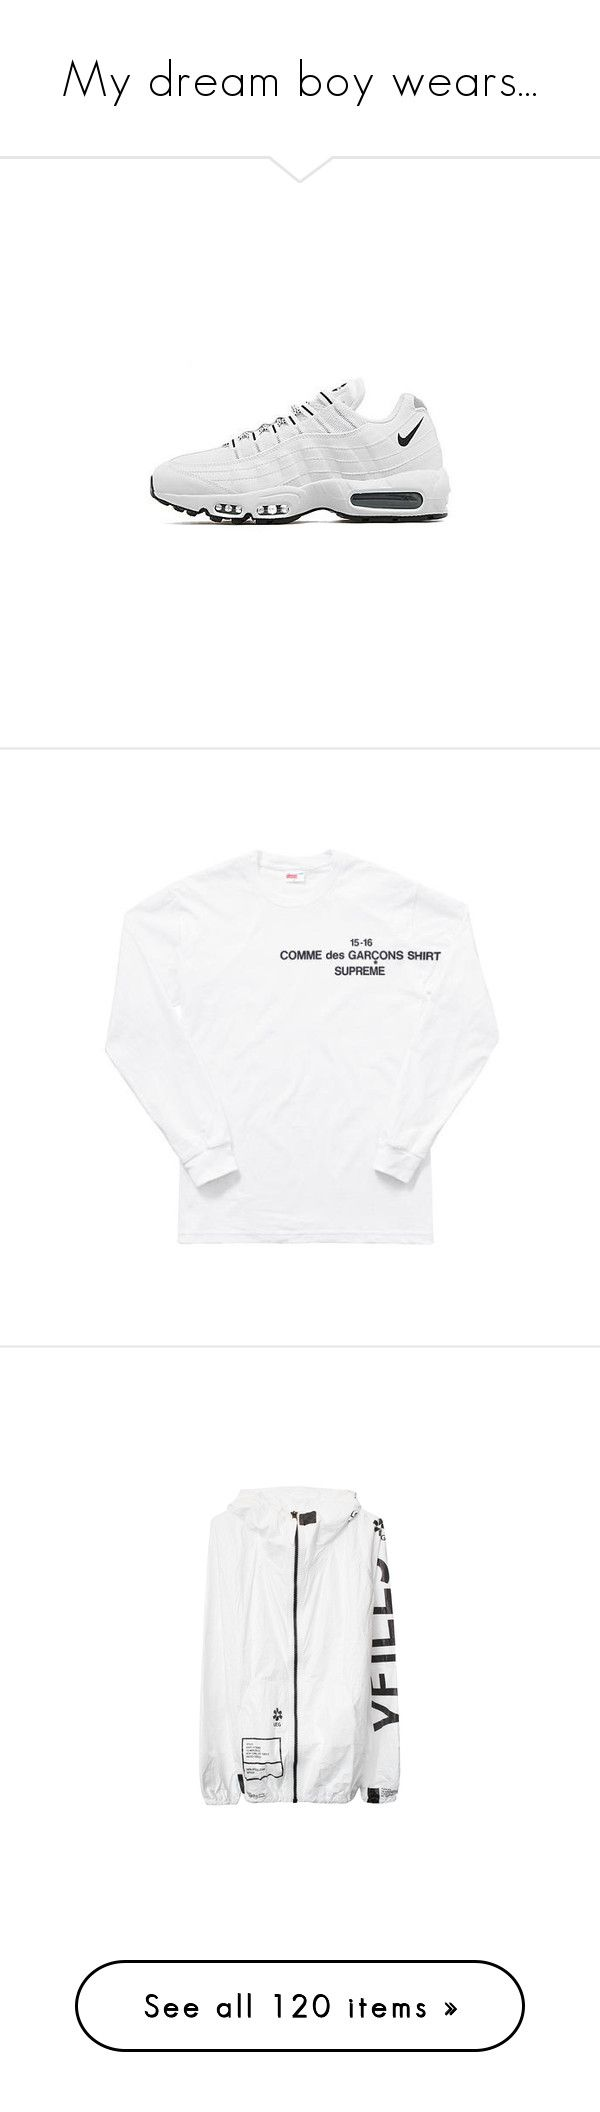 """""""My dream boy wears..."""" by luxe-no-fuxe ❤ liked on Polyvore featuring shoes, sneakers, nike, lace sneakers, nike footwear, eyelets shoes, nike trainers, embroidered shoes, tops and t-shirts"""